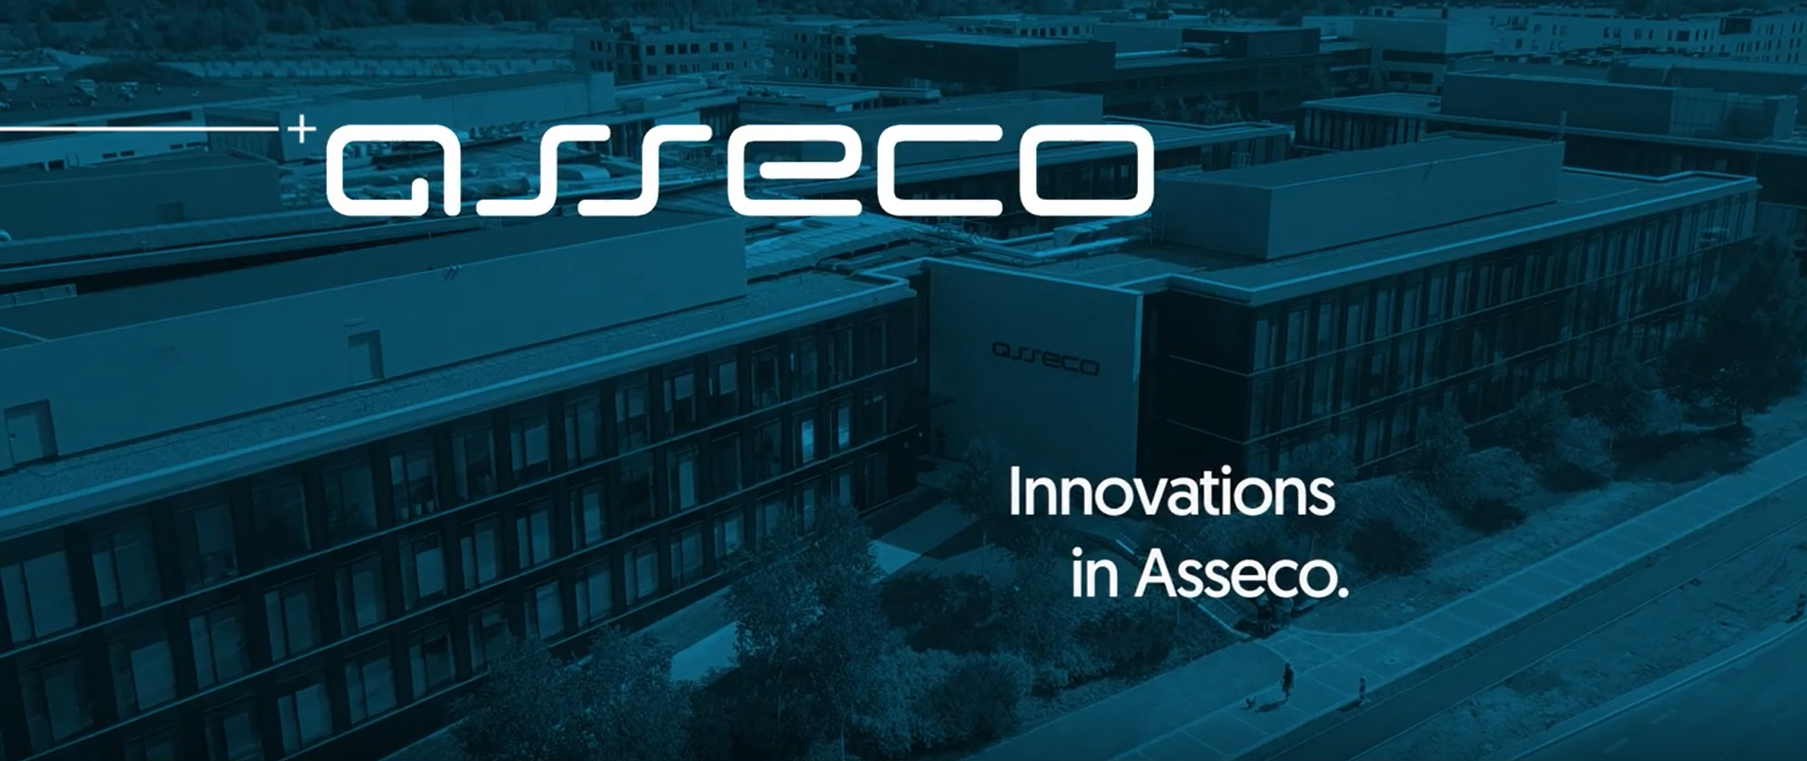 Innovationen bei Asseco